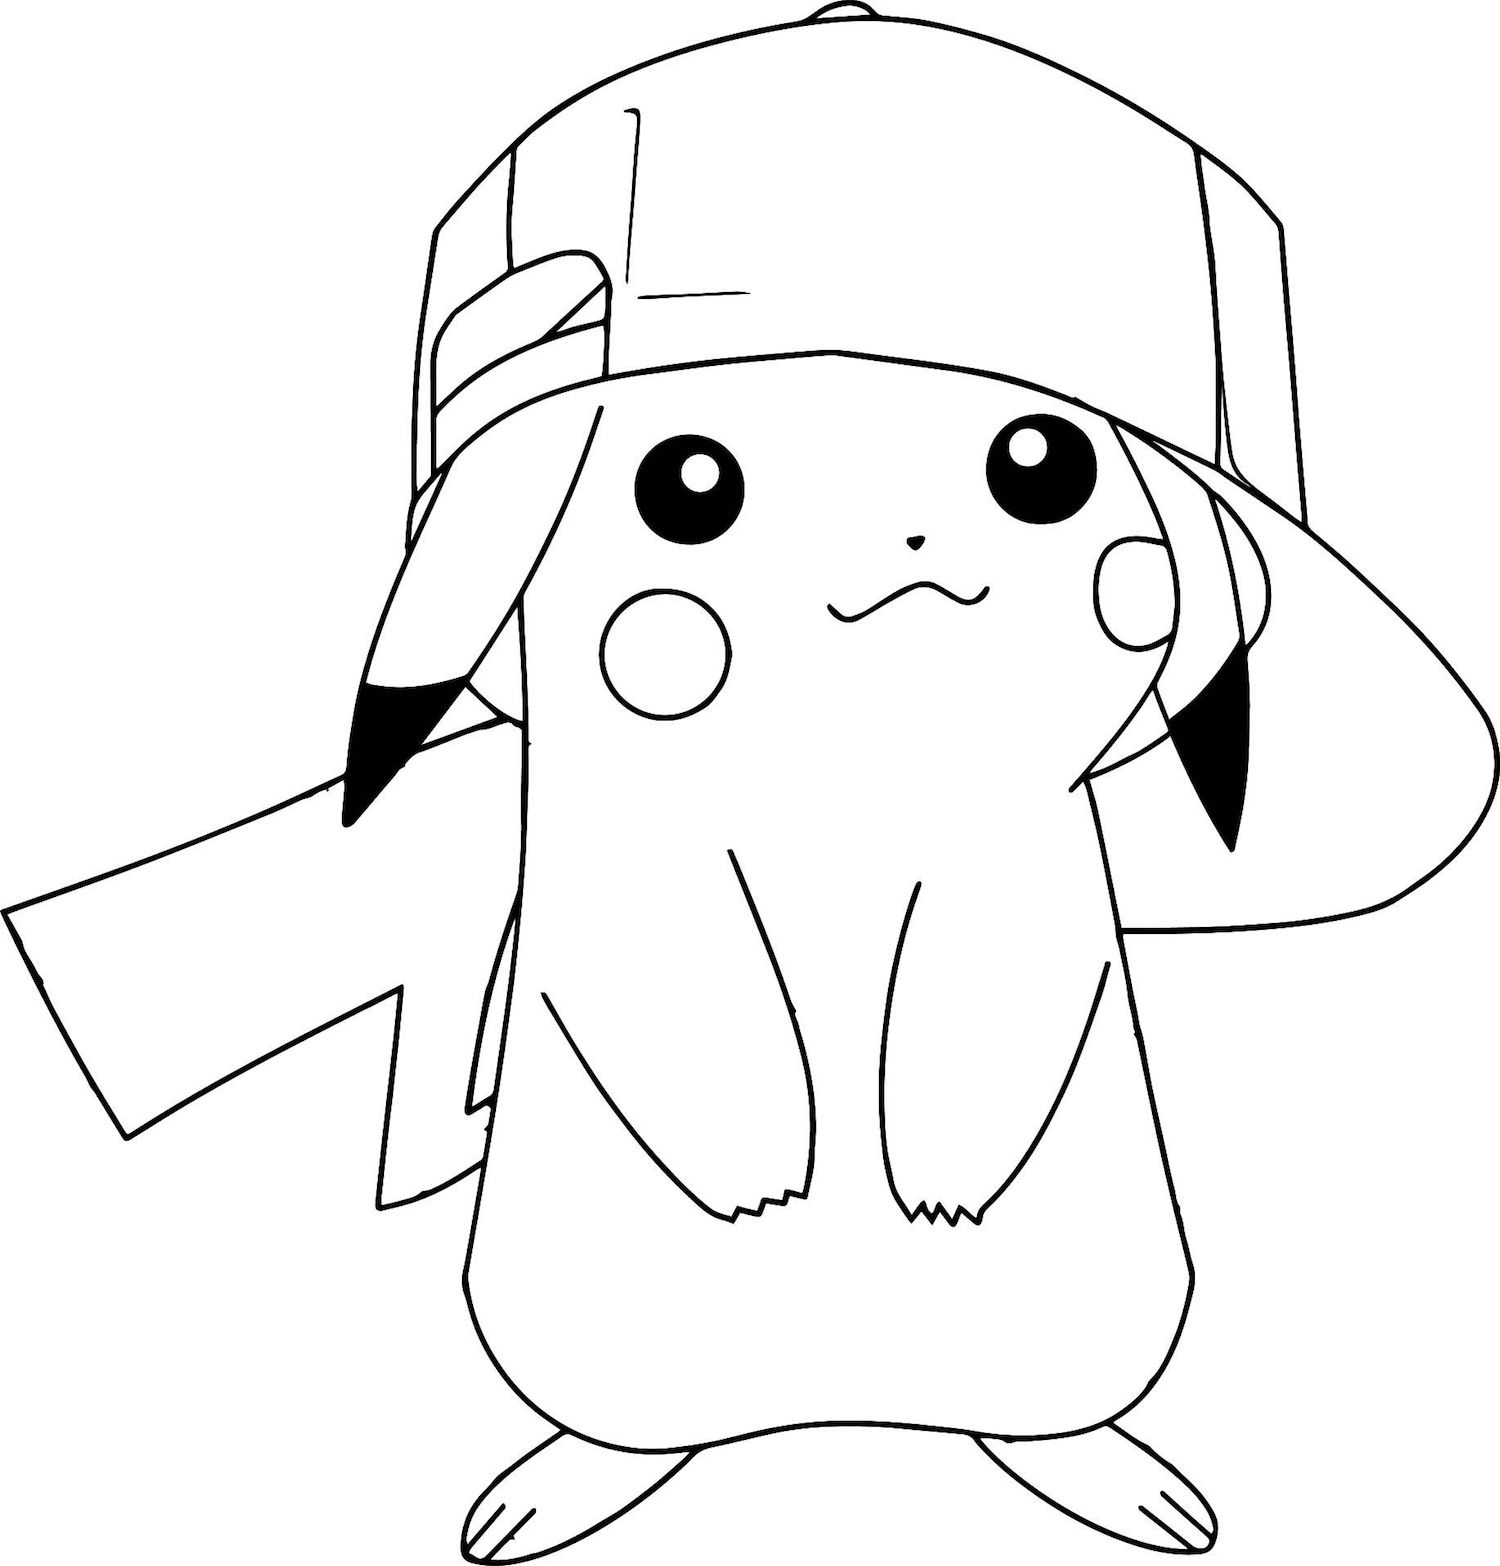 pokemon colouring in sheets pokemon coloring pages coloring kids coloring kids colouring pokemon sheets in